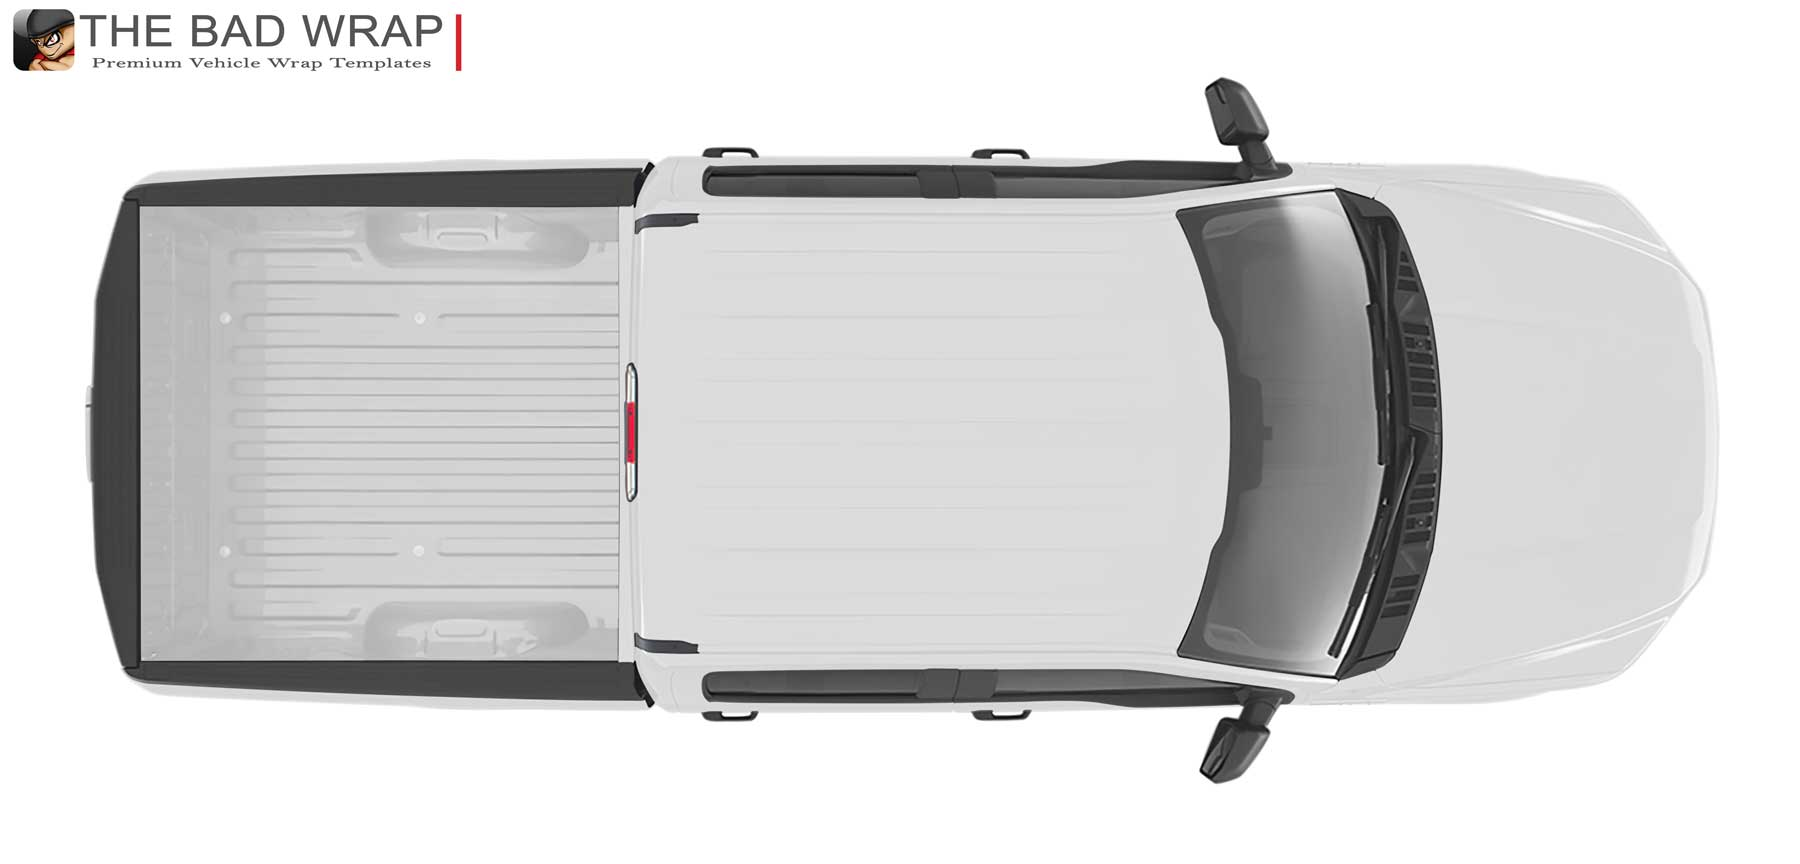 Truck Clipart Top View.